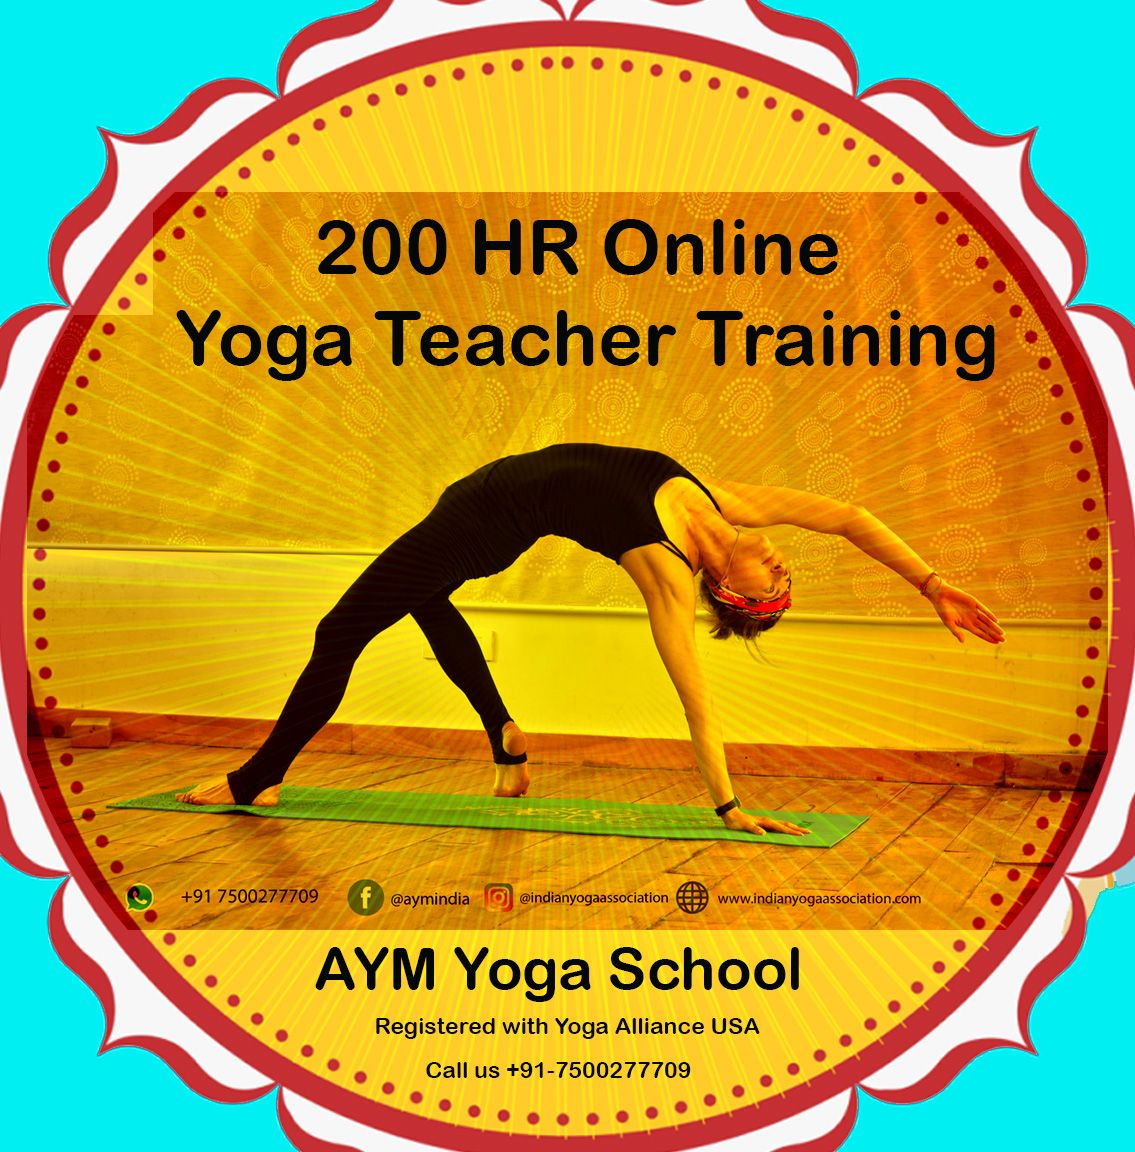 200 Hour Online Yoga Teacher Training In 2020 Online Yoga Teacher Training Yoga Course Online Online Yoga